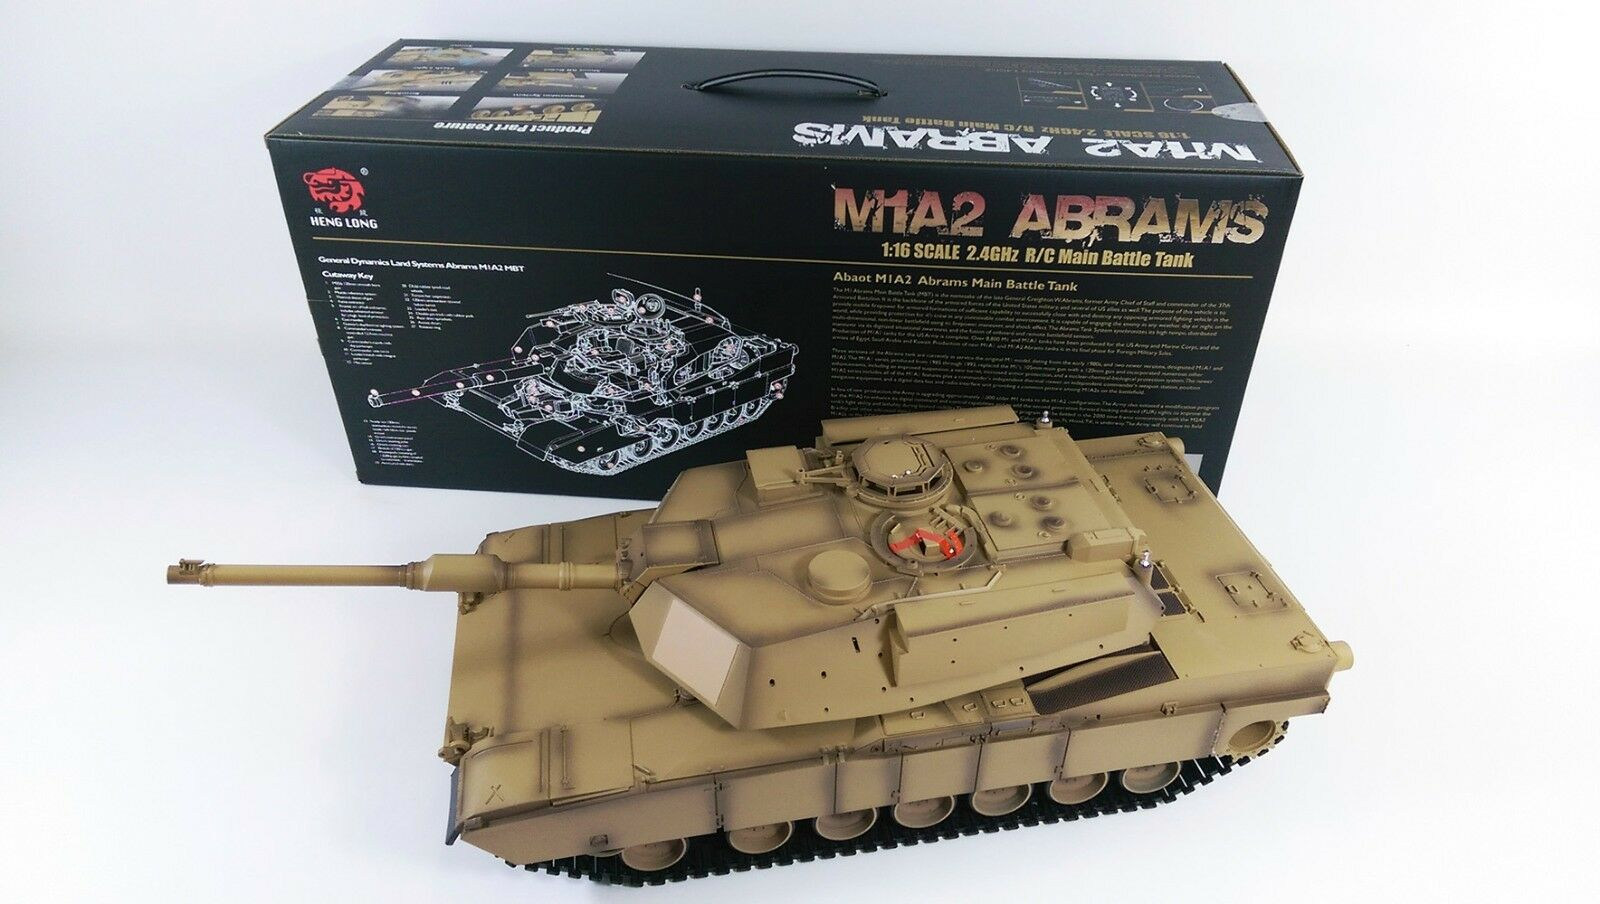 NEW Heng Long Radio Remote Control RC Abrams M1A2 Desert Camo Tank 1 16th 2.4GHz